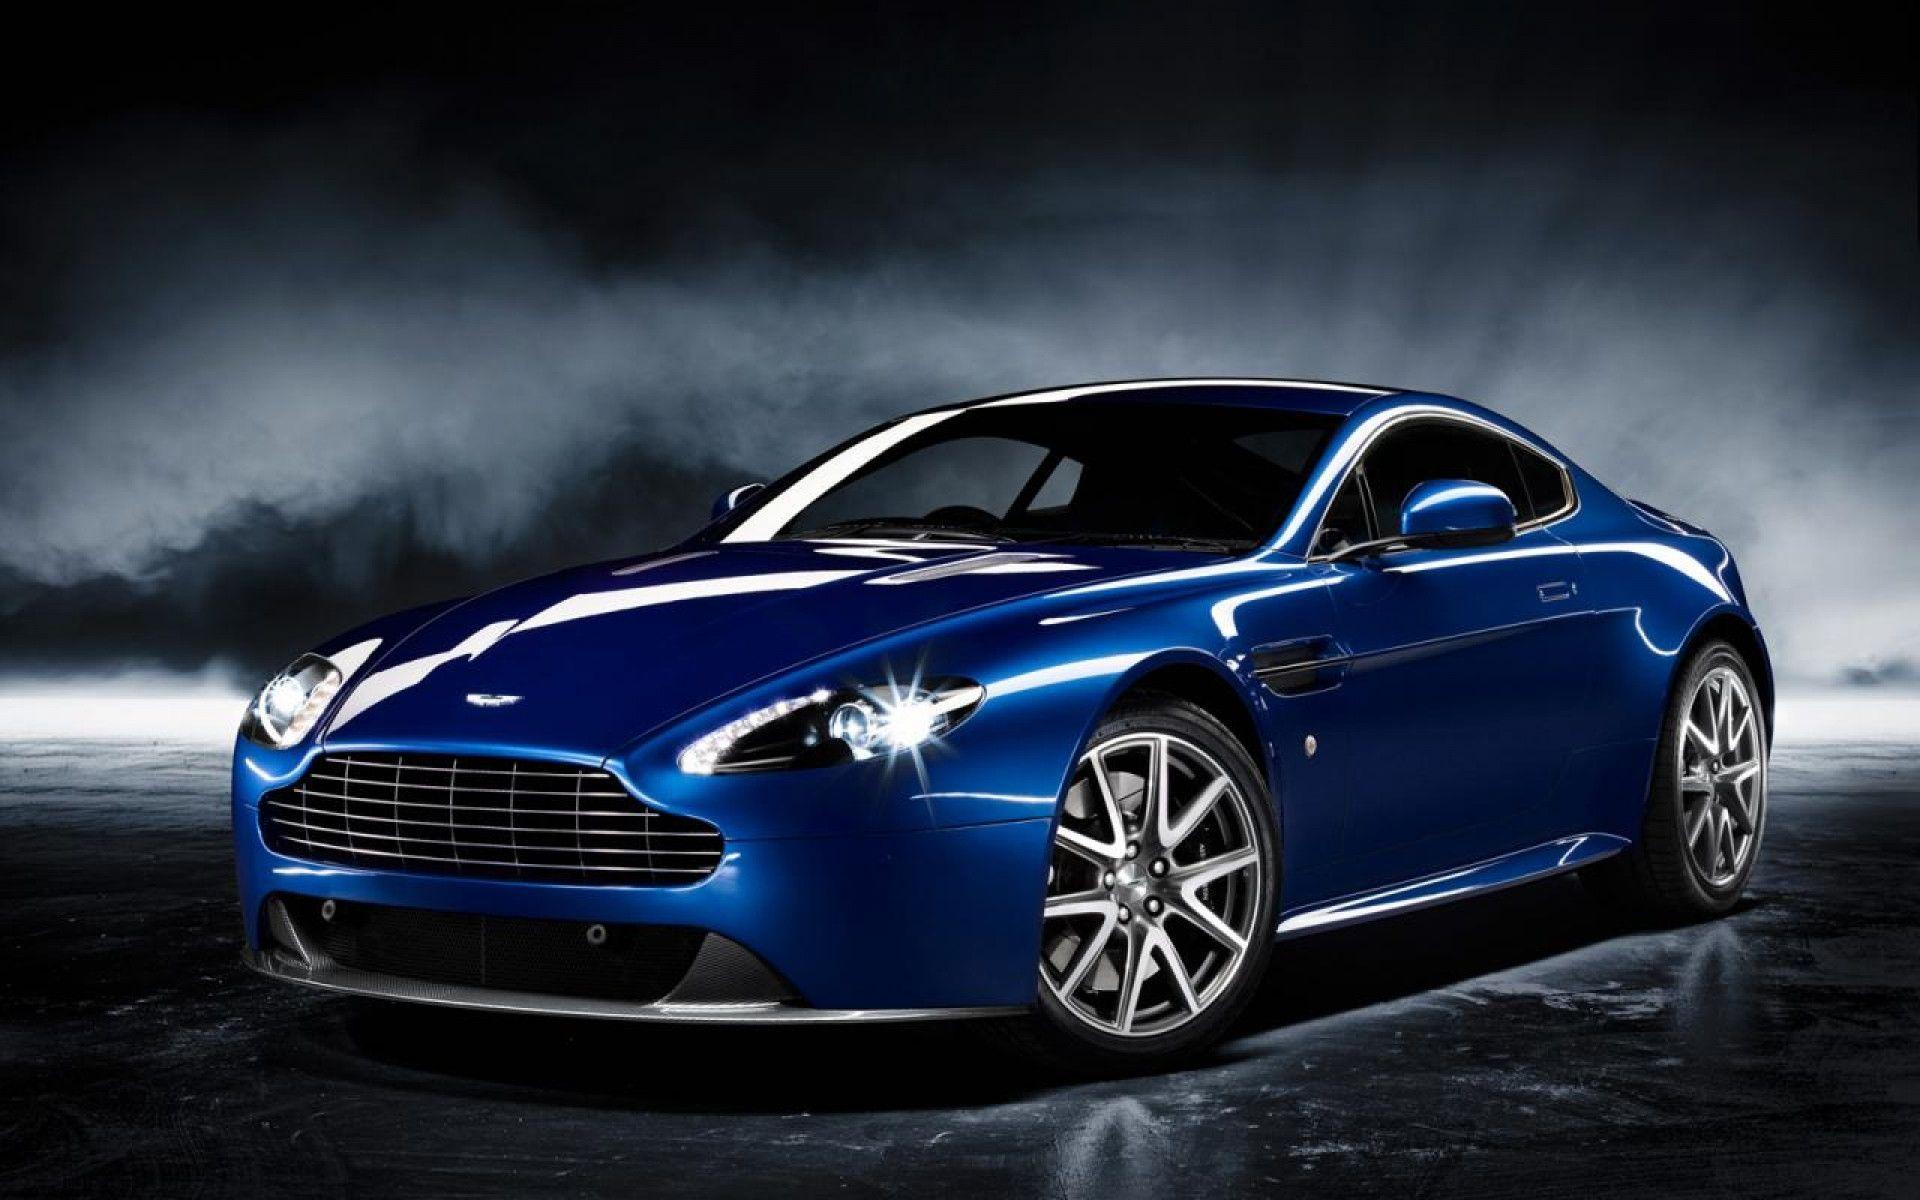 Beautiful 2015 Aston Martin DB9 Black HD Wallpaper (1563) | Cool Car Wallpapers